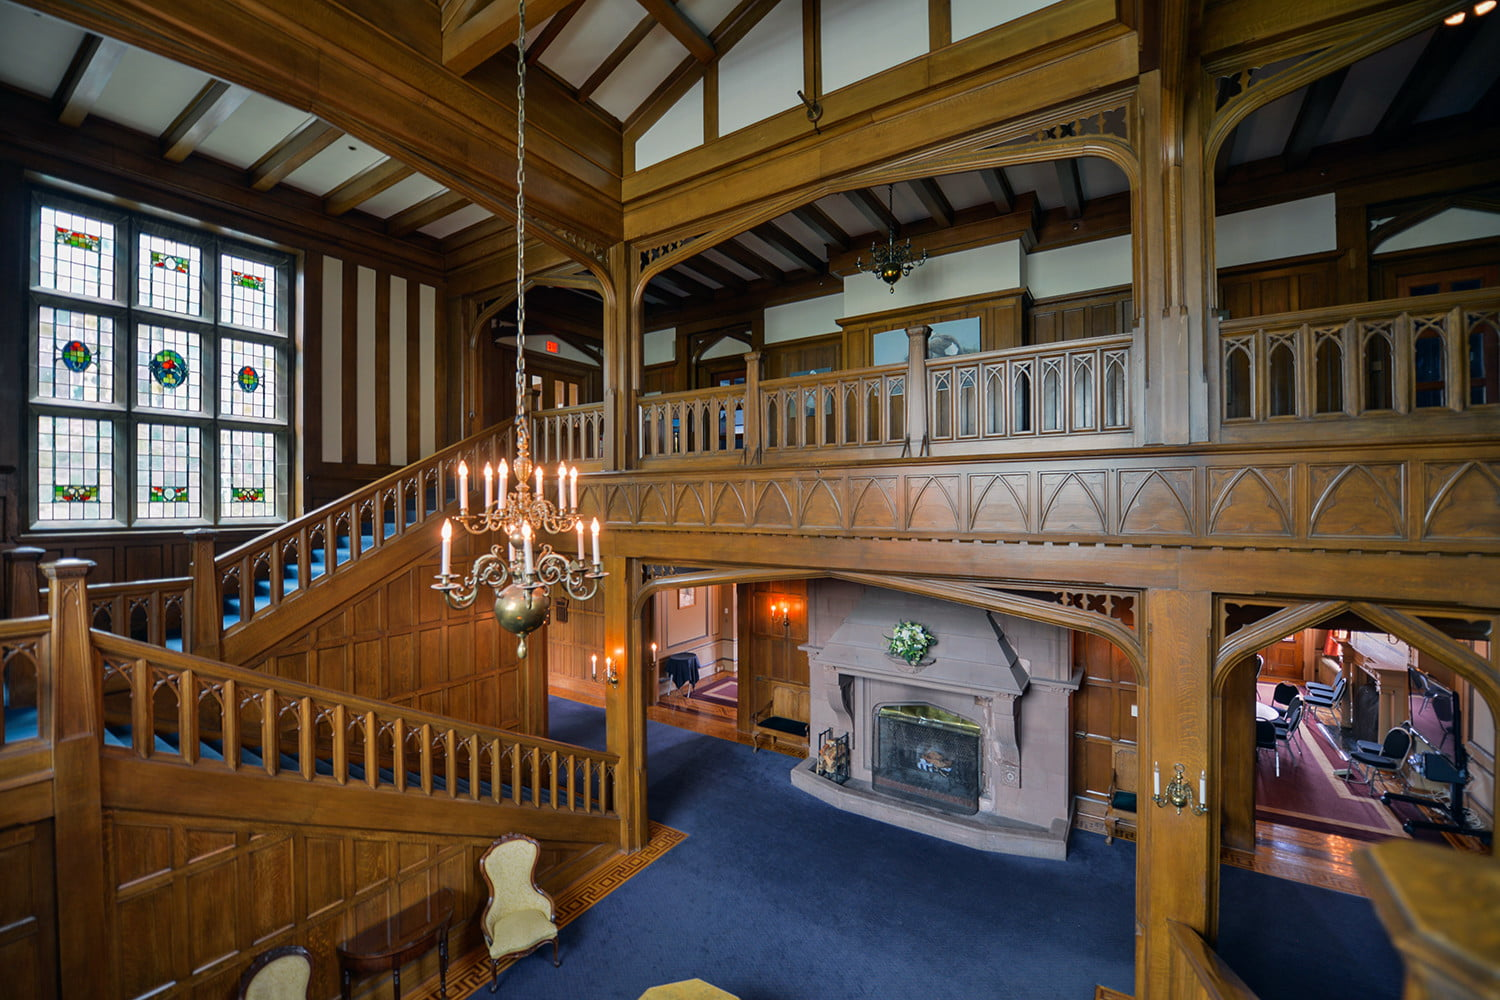 10 famous movie locations you can actually visit hatley castle  main hall